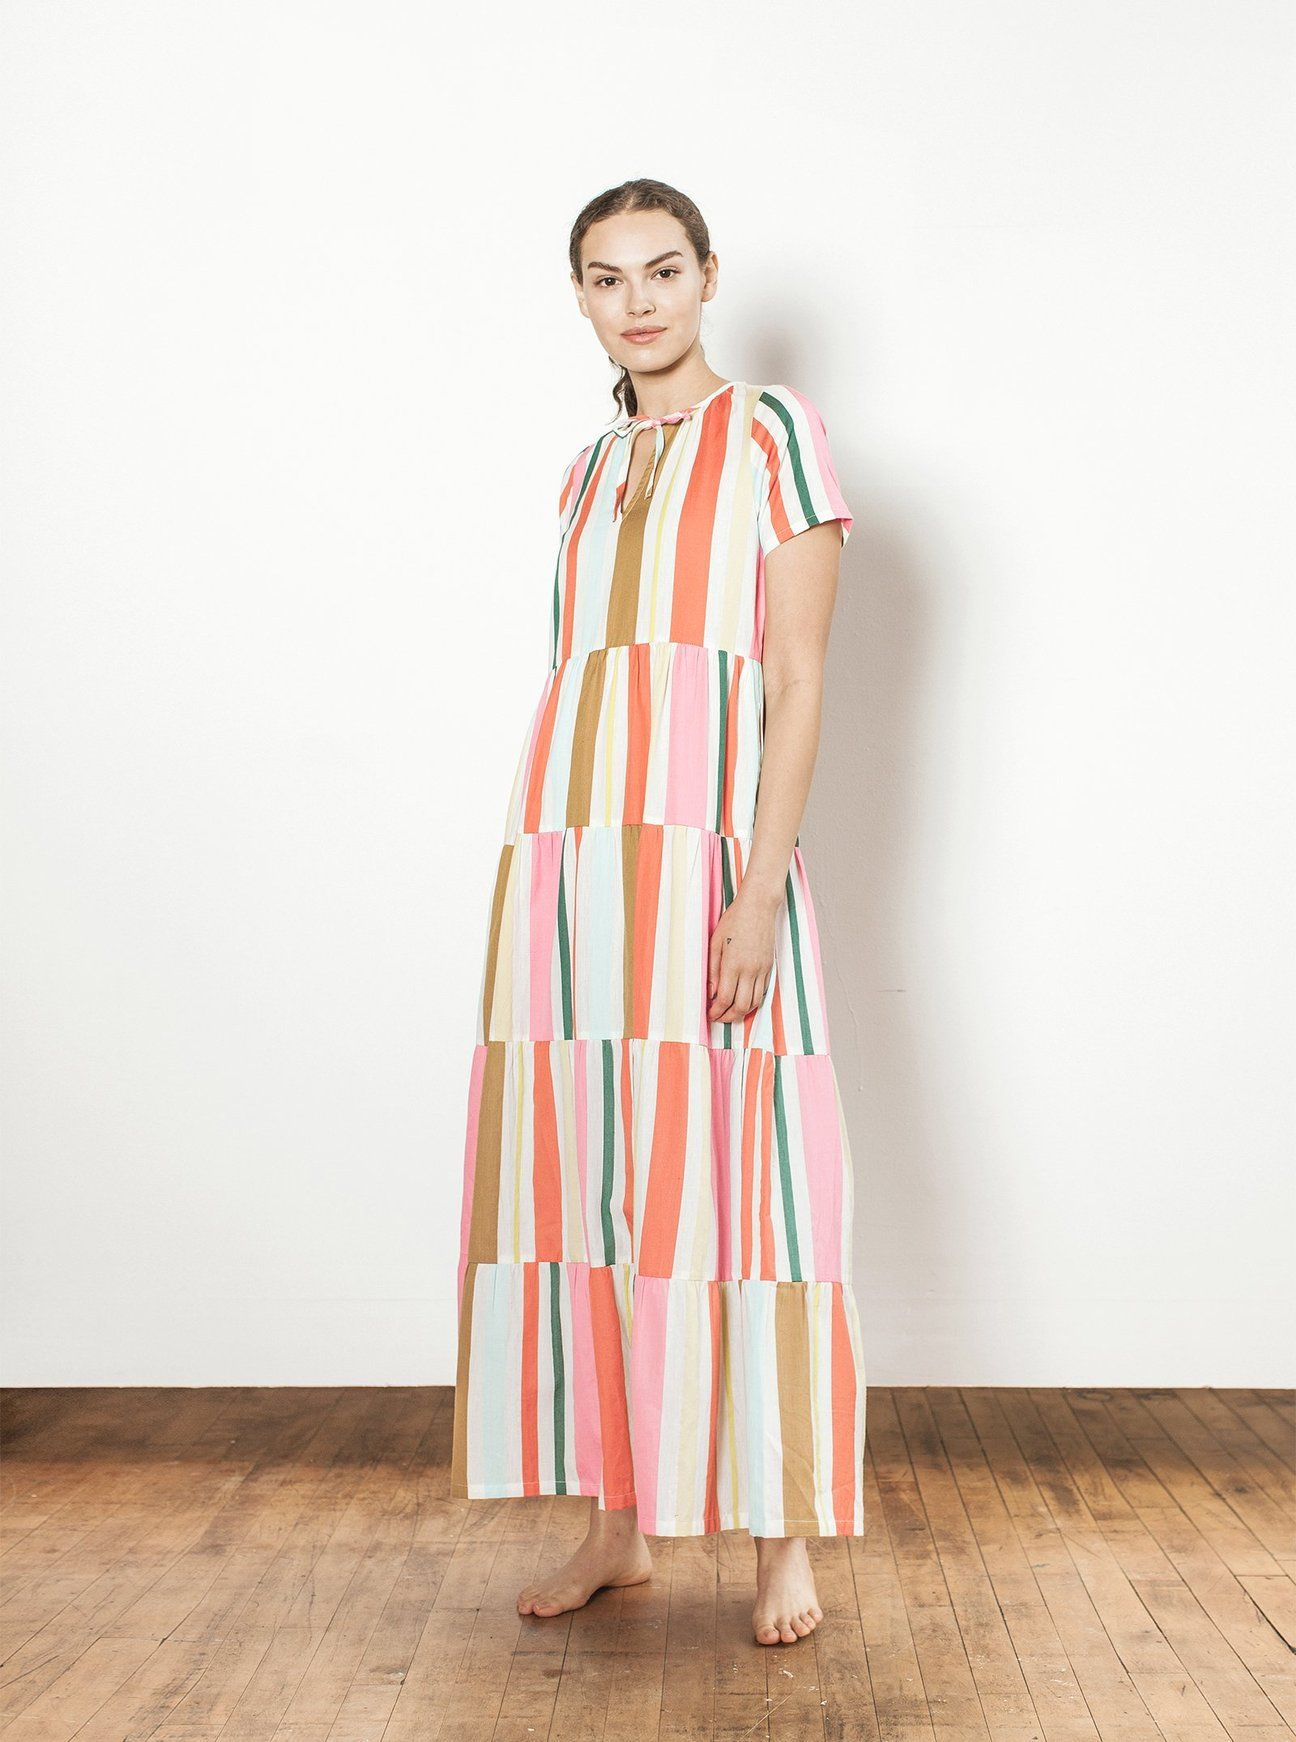 An Ace And Jig Tiered Maxi Length V Neck Dress With Short Dolman Sleeves And A Drawstring Necktie Made In Indi Sewing Summer Dresses Ace And Jig Short Dresses